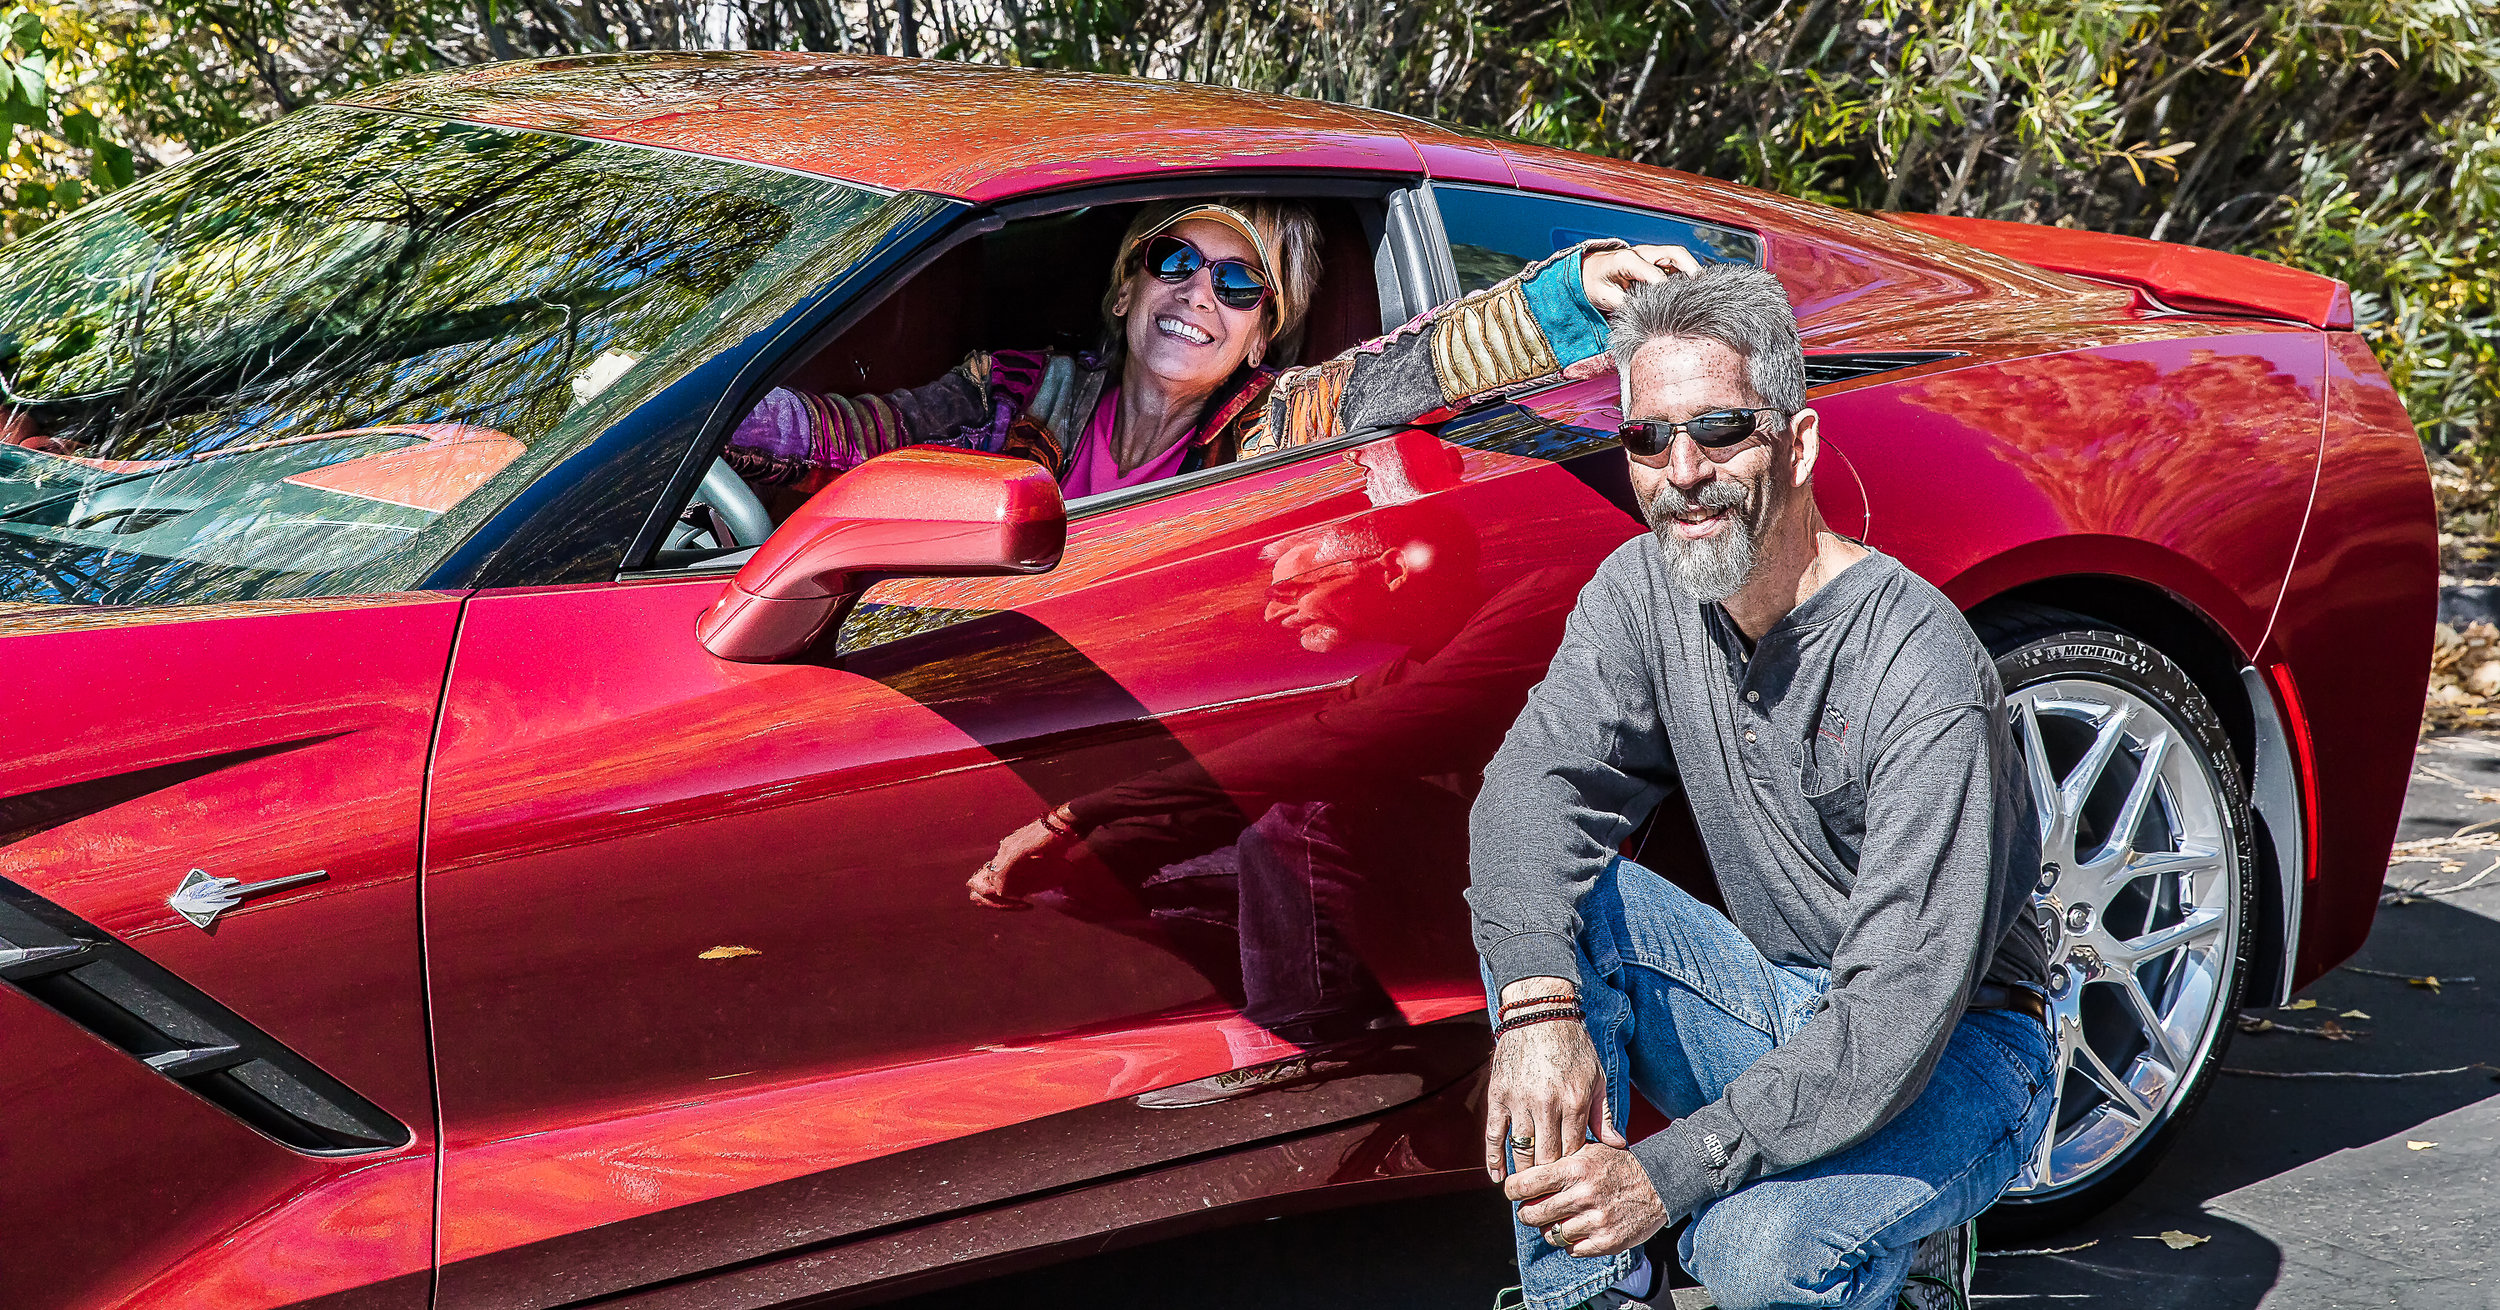 Renae & Toby Karlquist - Toby and Renae own Torenka Photography in Mesa, Arizona and have 70+ years of combined photography experience which means that Toby is really old. Their main areas of interest are automobiles, concerts, landscapes and searching for the perfect Bloody Mary and/or Cabernet Sauvignon. Not necessarily in that order.Check out their work at www.torenka.comToby/Renae Karlquist480-390-9970Toby@torenka.comRenae@torenka.com